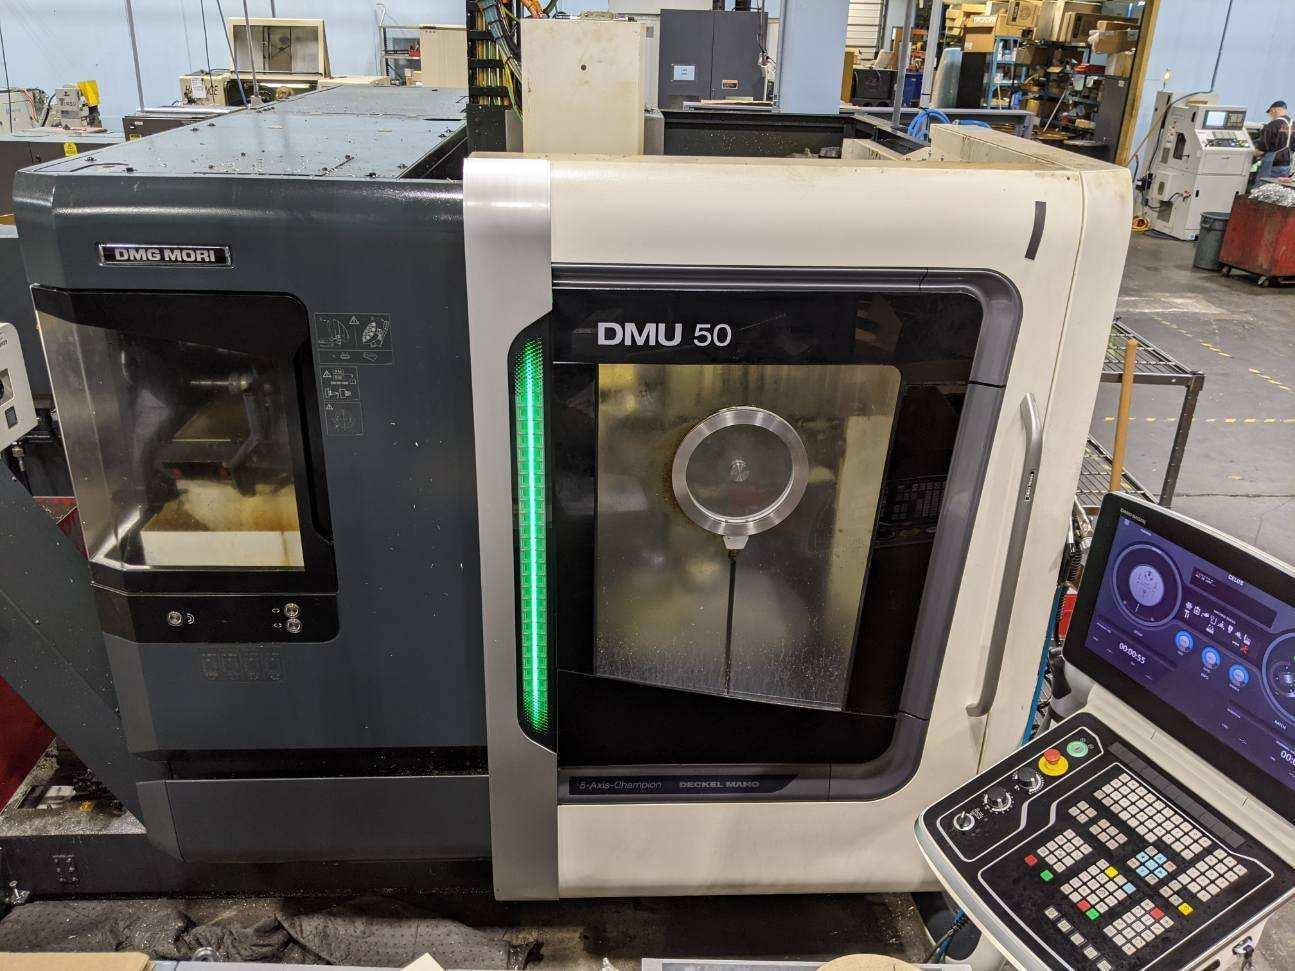 DMG Mori DMU 50 5-Axis Machining Center - New 2014